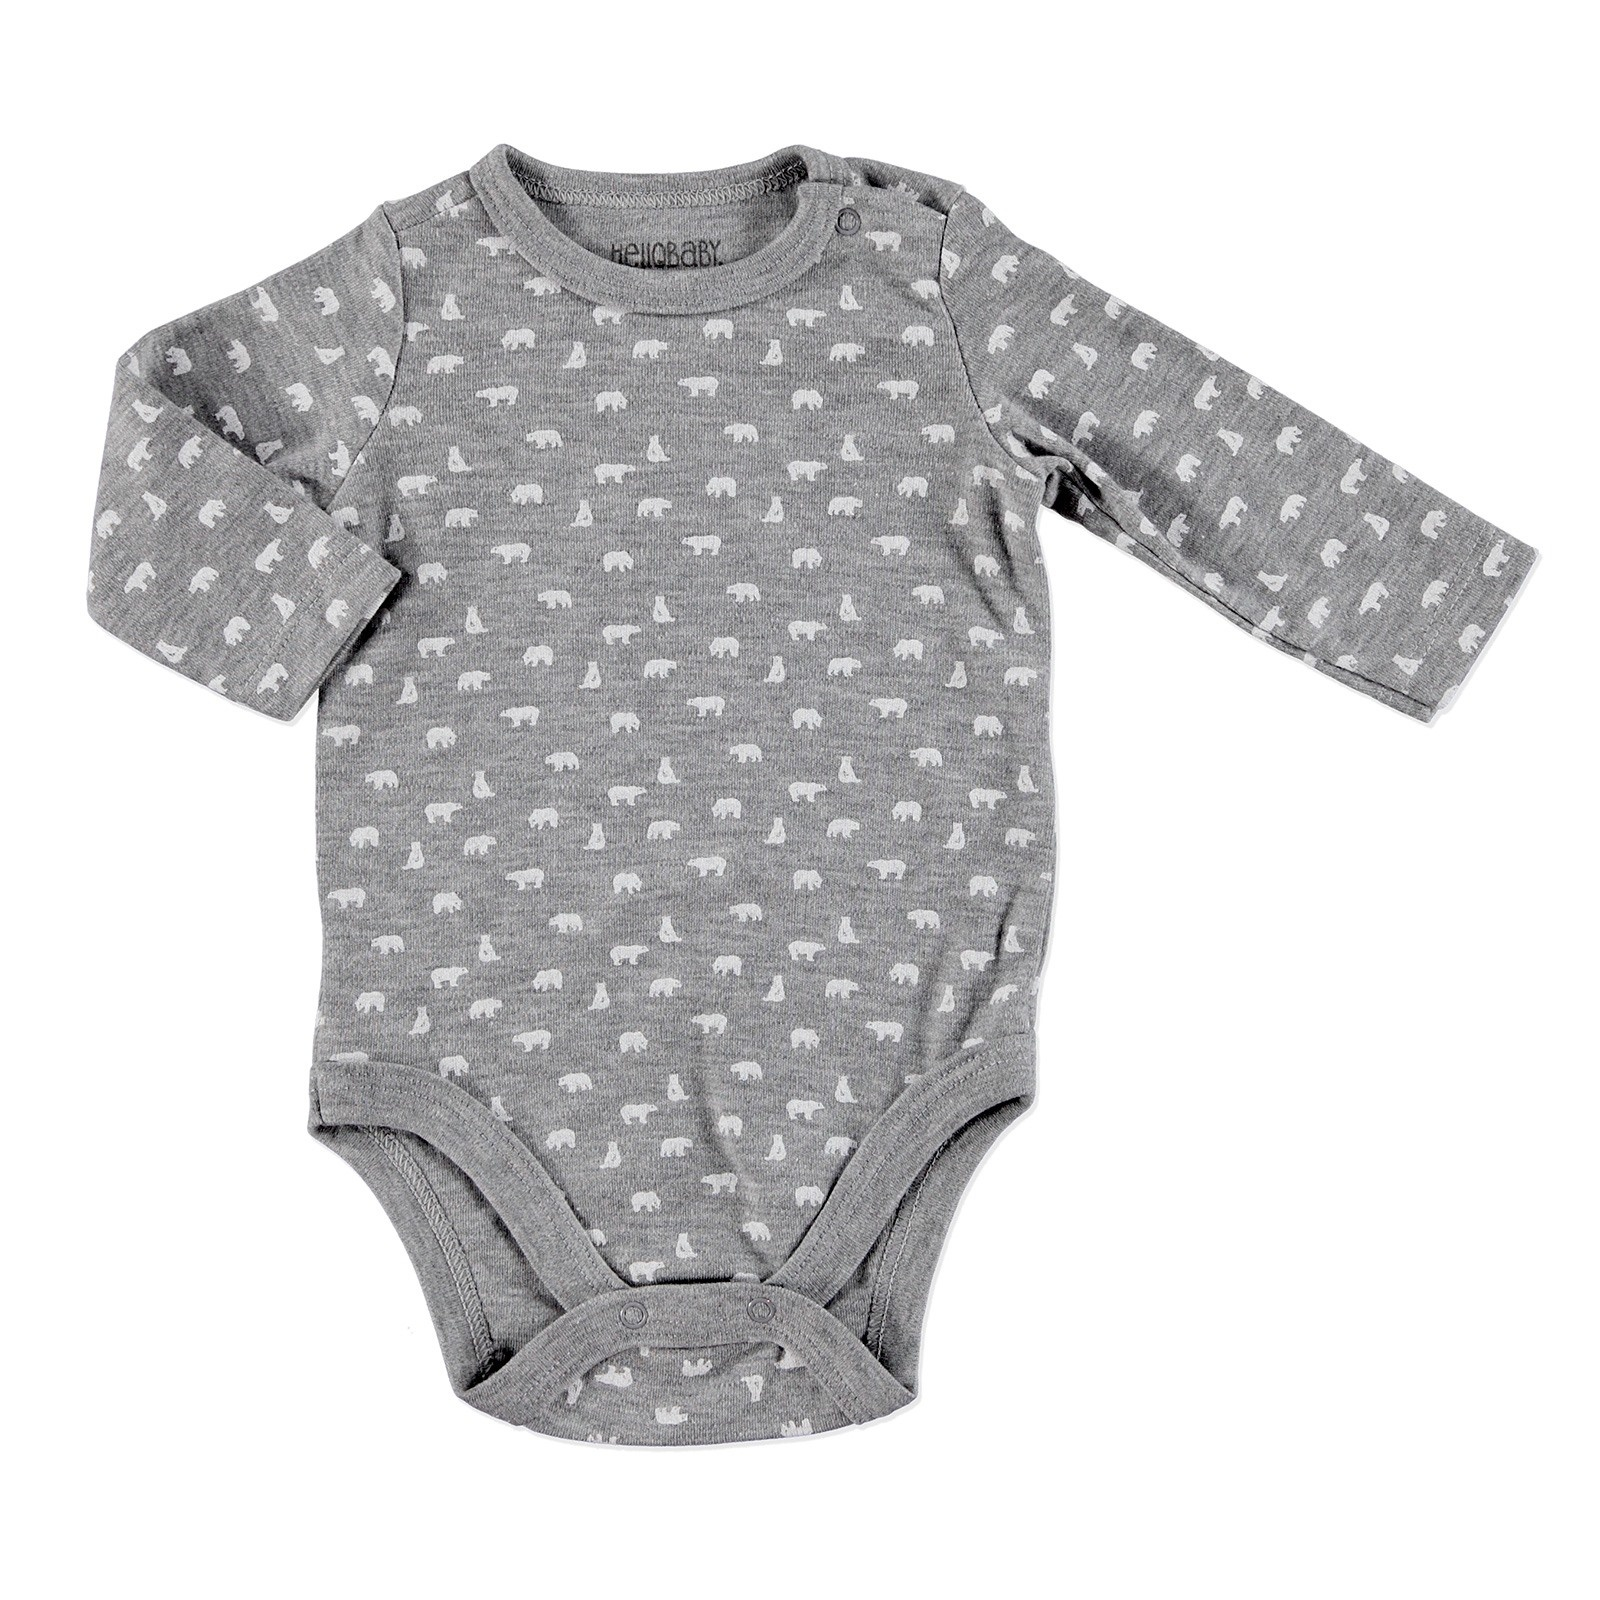 Ebebek HelloBaby Little Cute Paws Bear Printed Baby Long Sleeve Bodysuit